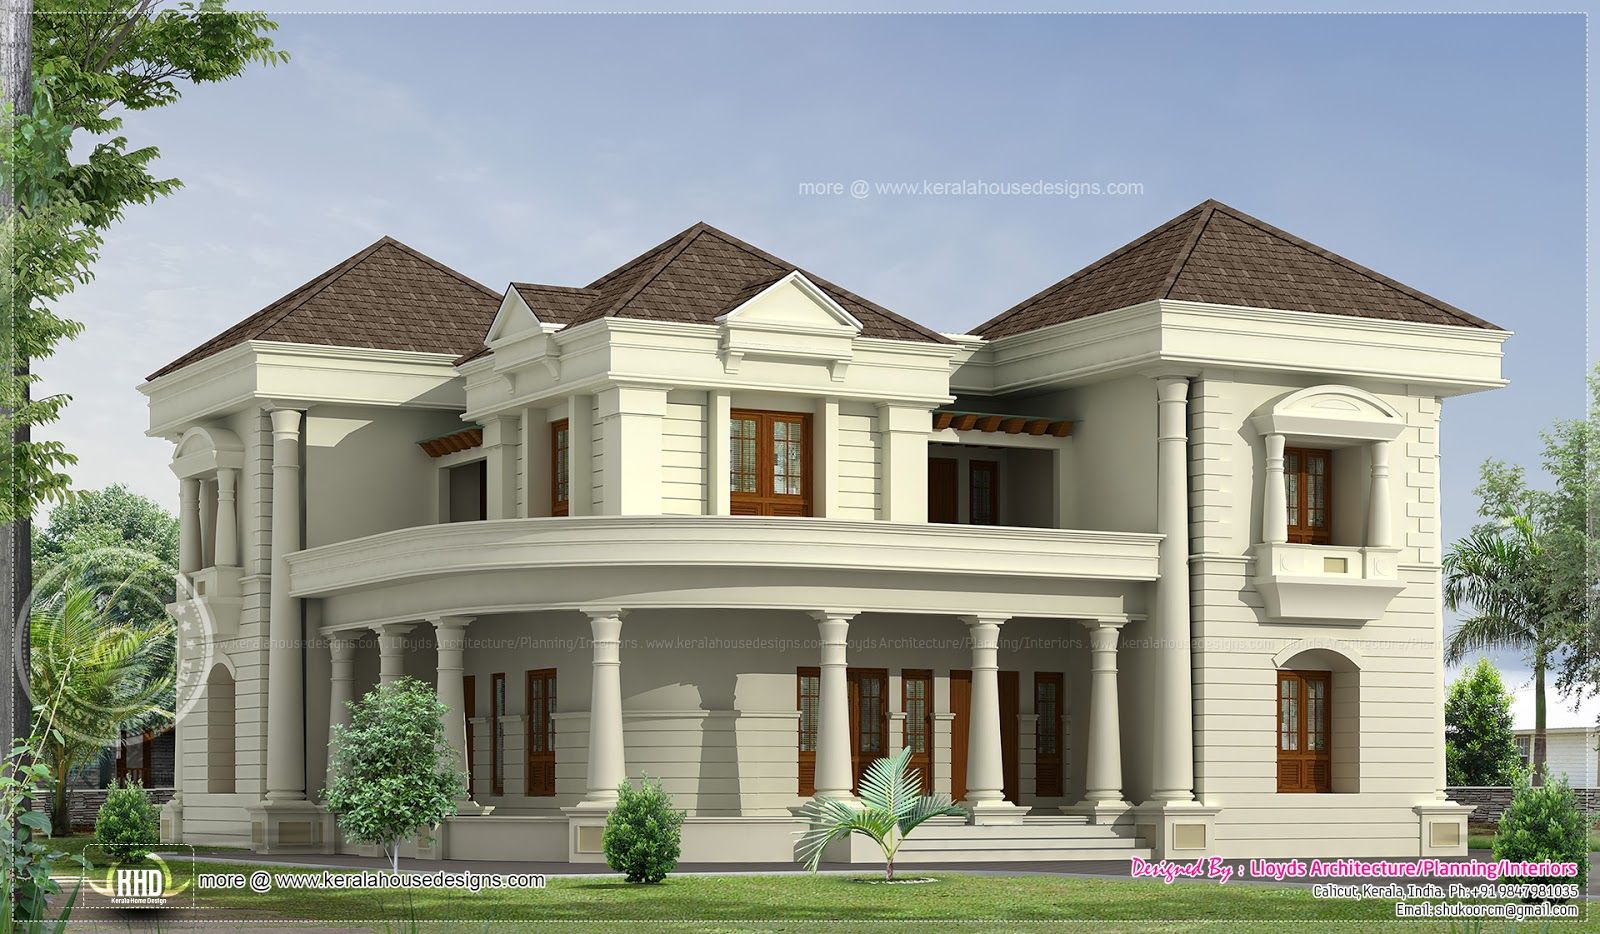 Modern bungalows bedroom luxurious bungalow floor plan for Modern 5 bedroom house floor plans